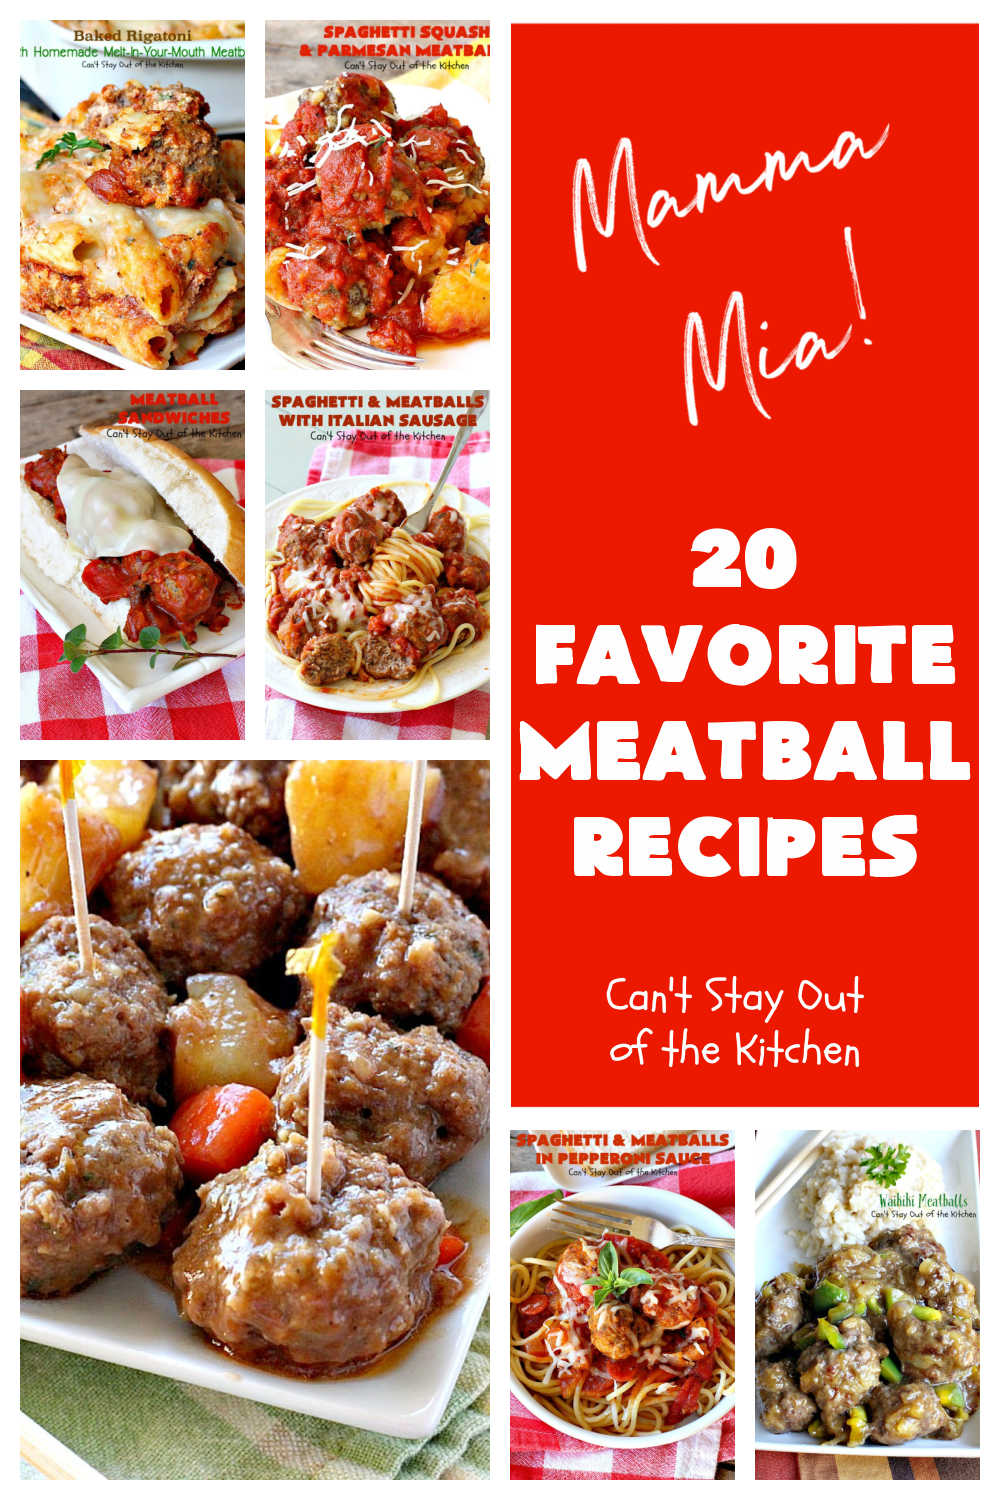 20 Favorite Meatball Recipes | Can't Stay Out of the Kitchen | #appetizers, #sliders & #sandwiches & lots of different ways to enjoy #meatballs without every version being #SpaghettiAndMeatballs! #beef #20FavoriteMeatballRecipes #MeatballRecipes